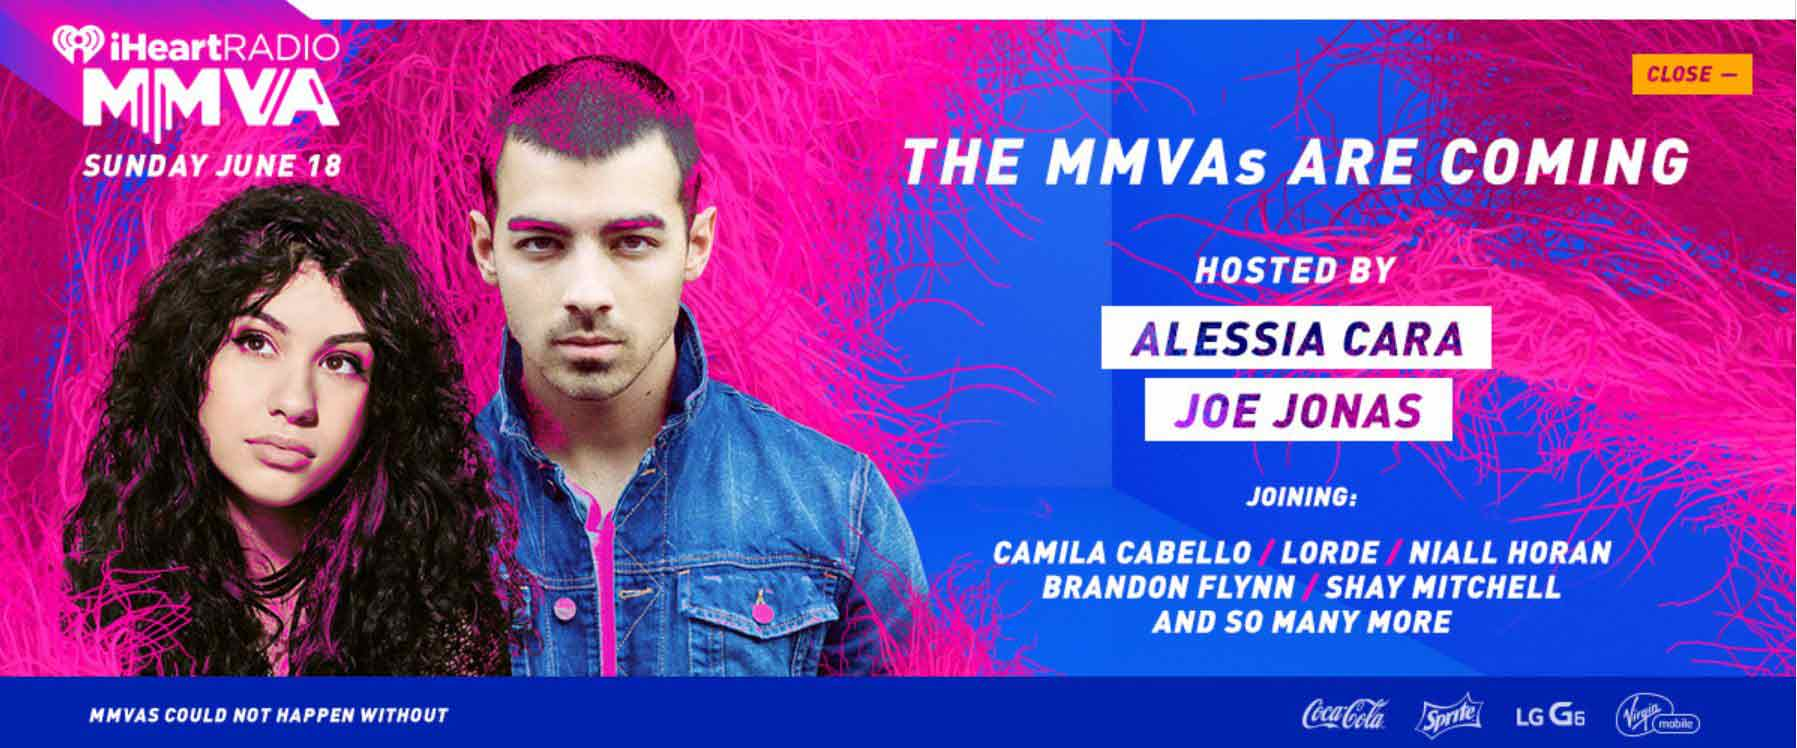 Much hosted by Joe Jonas and Alessia Cara poster